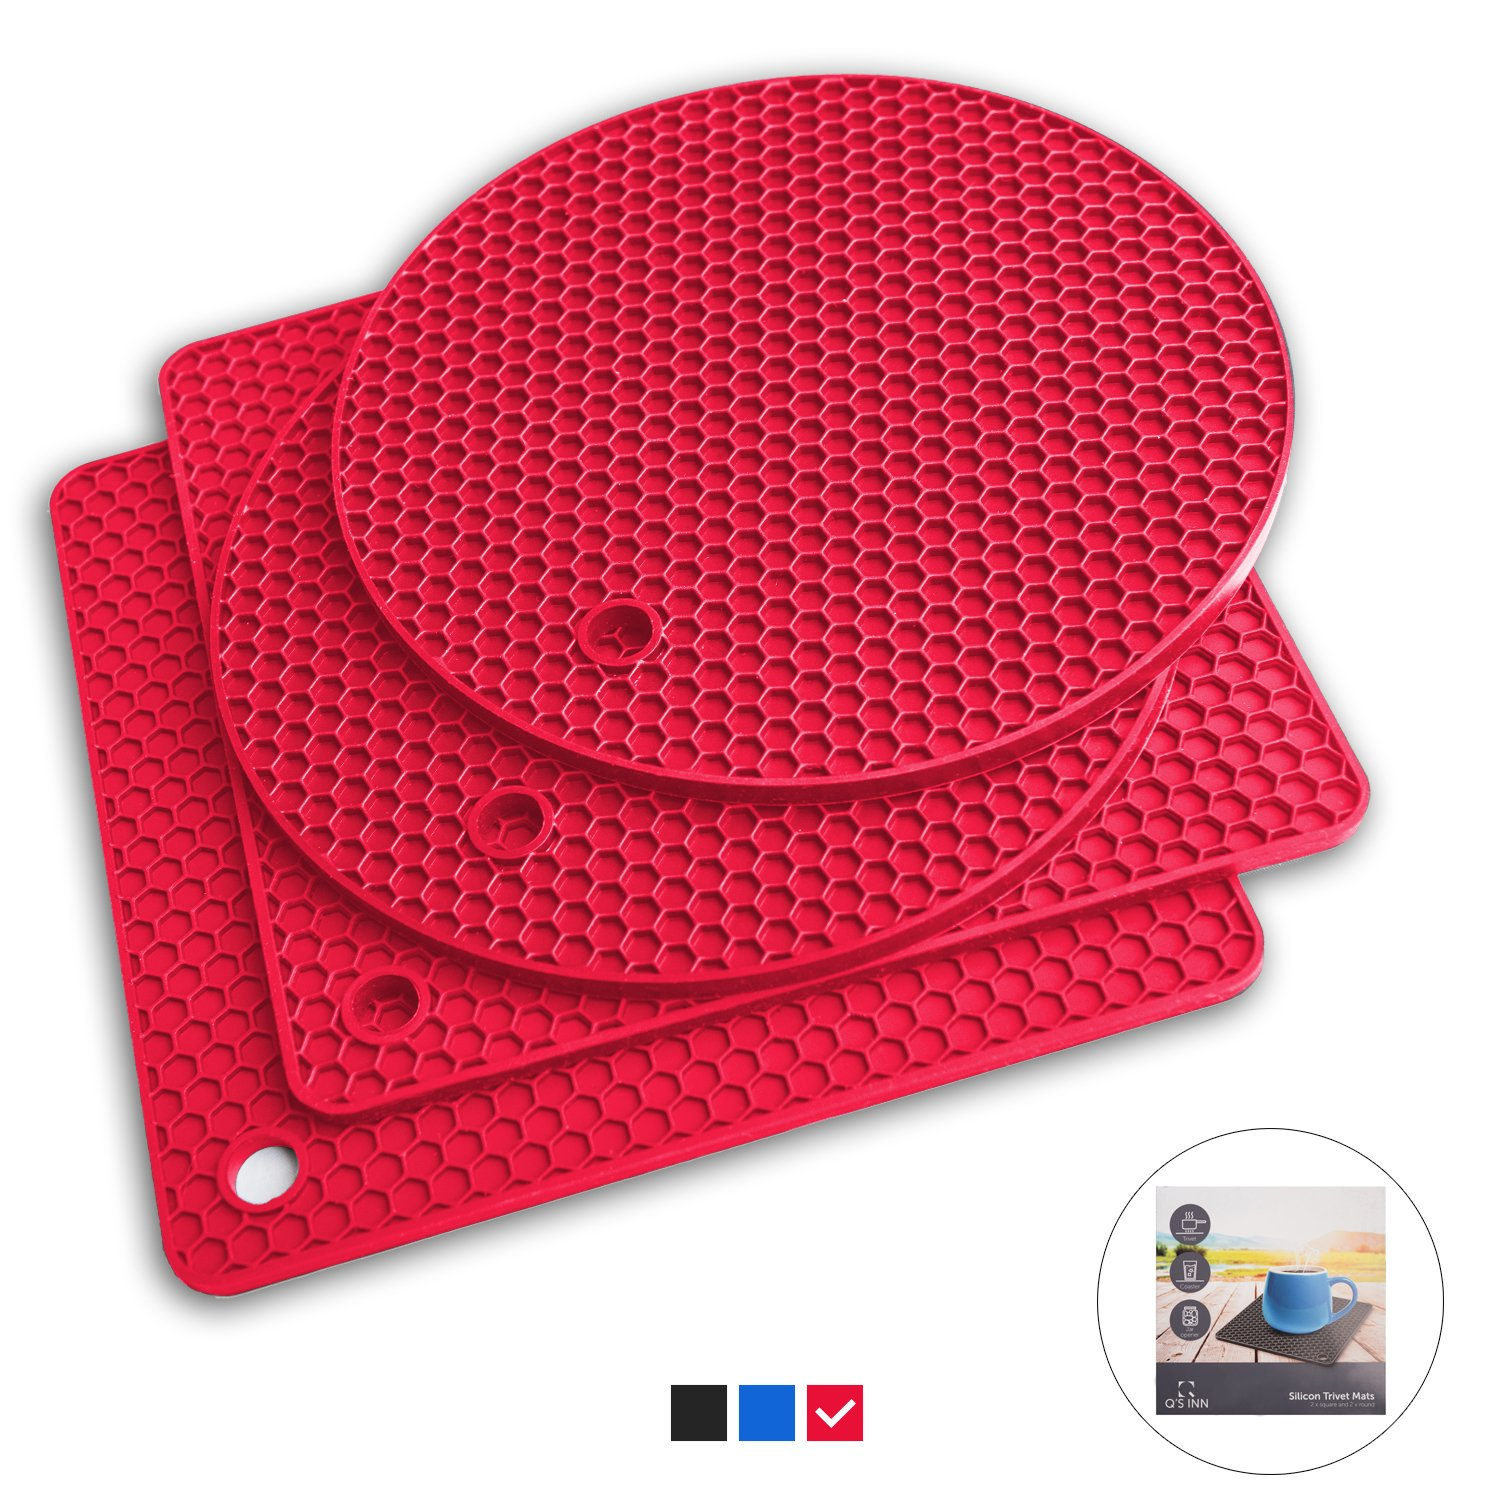 Q's INN Silicone Trivet Mats | Hot Pot Holders | Drying Mat. Our 7 in 1 Multi-Purpose Kitchen Tool is Heat Resistant to 440°F, Non-slip,durable, flexible easy to wash and dry and Contains 4 pcs. by Q's INN (Image #1)